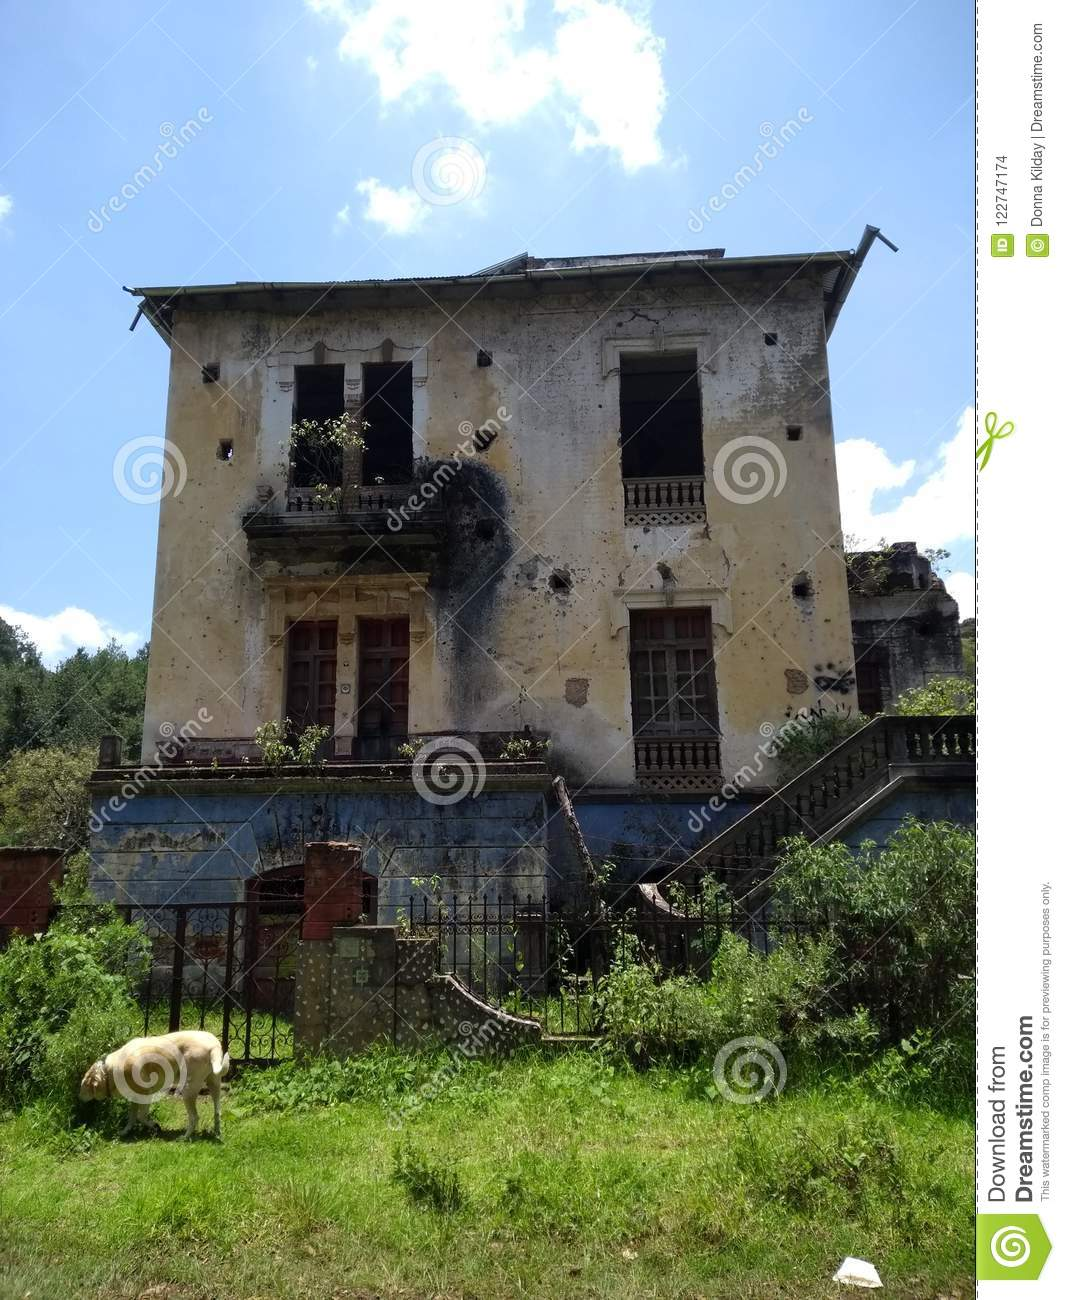 Abandoned House Stock Images